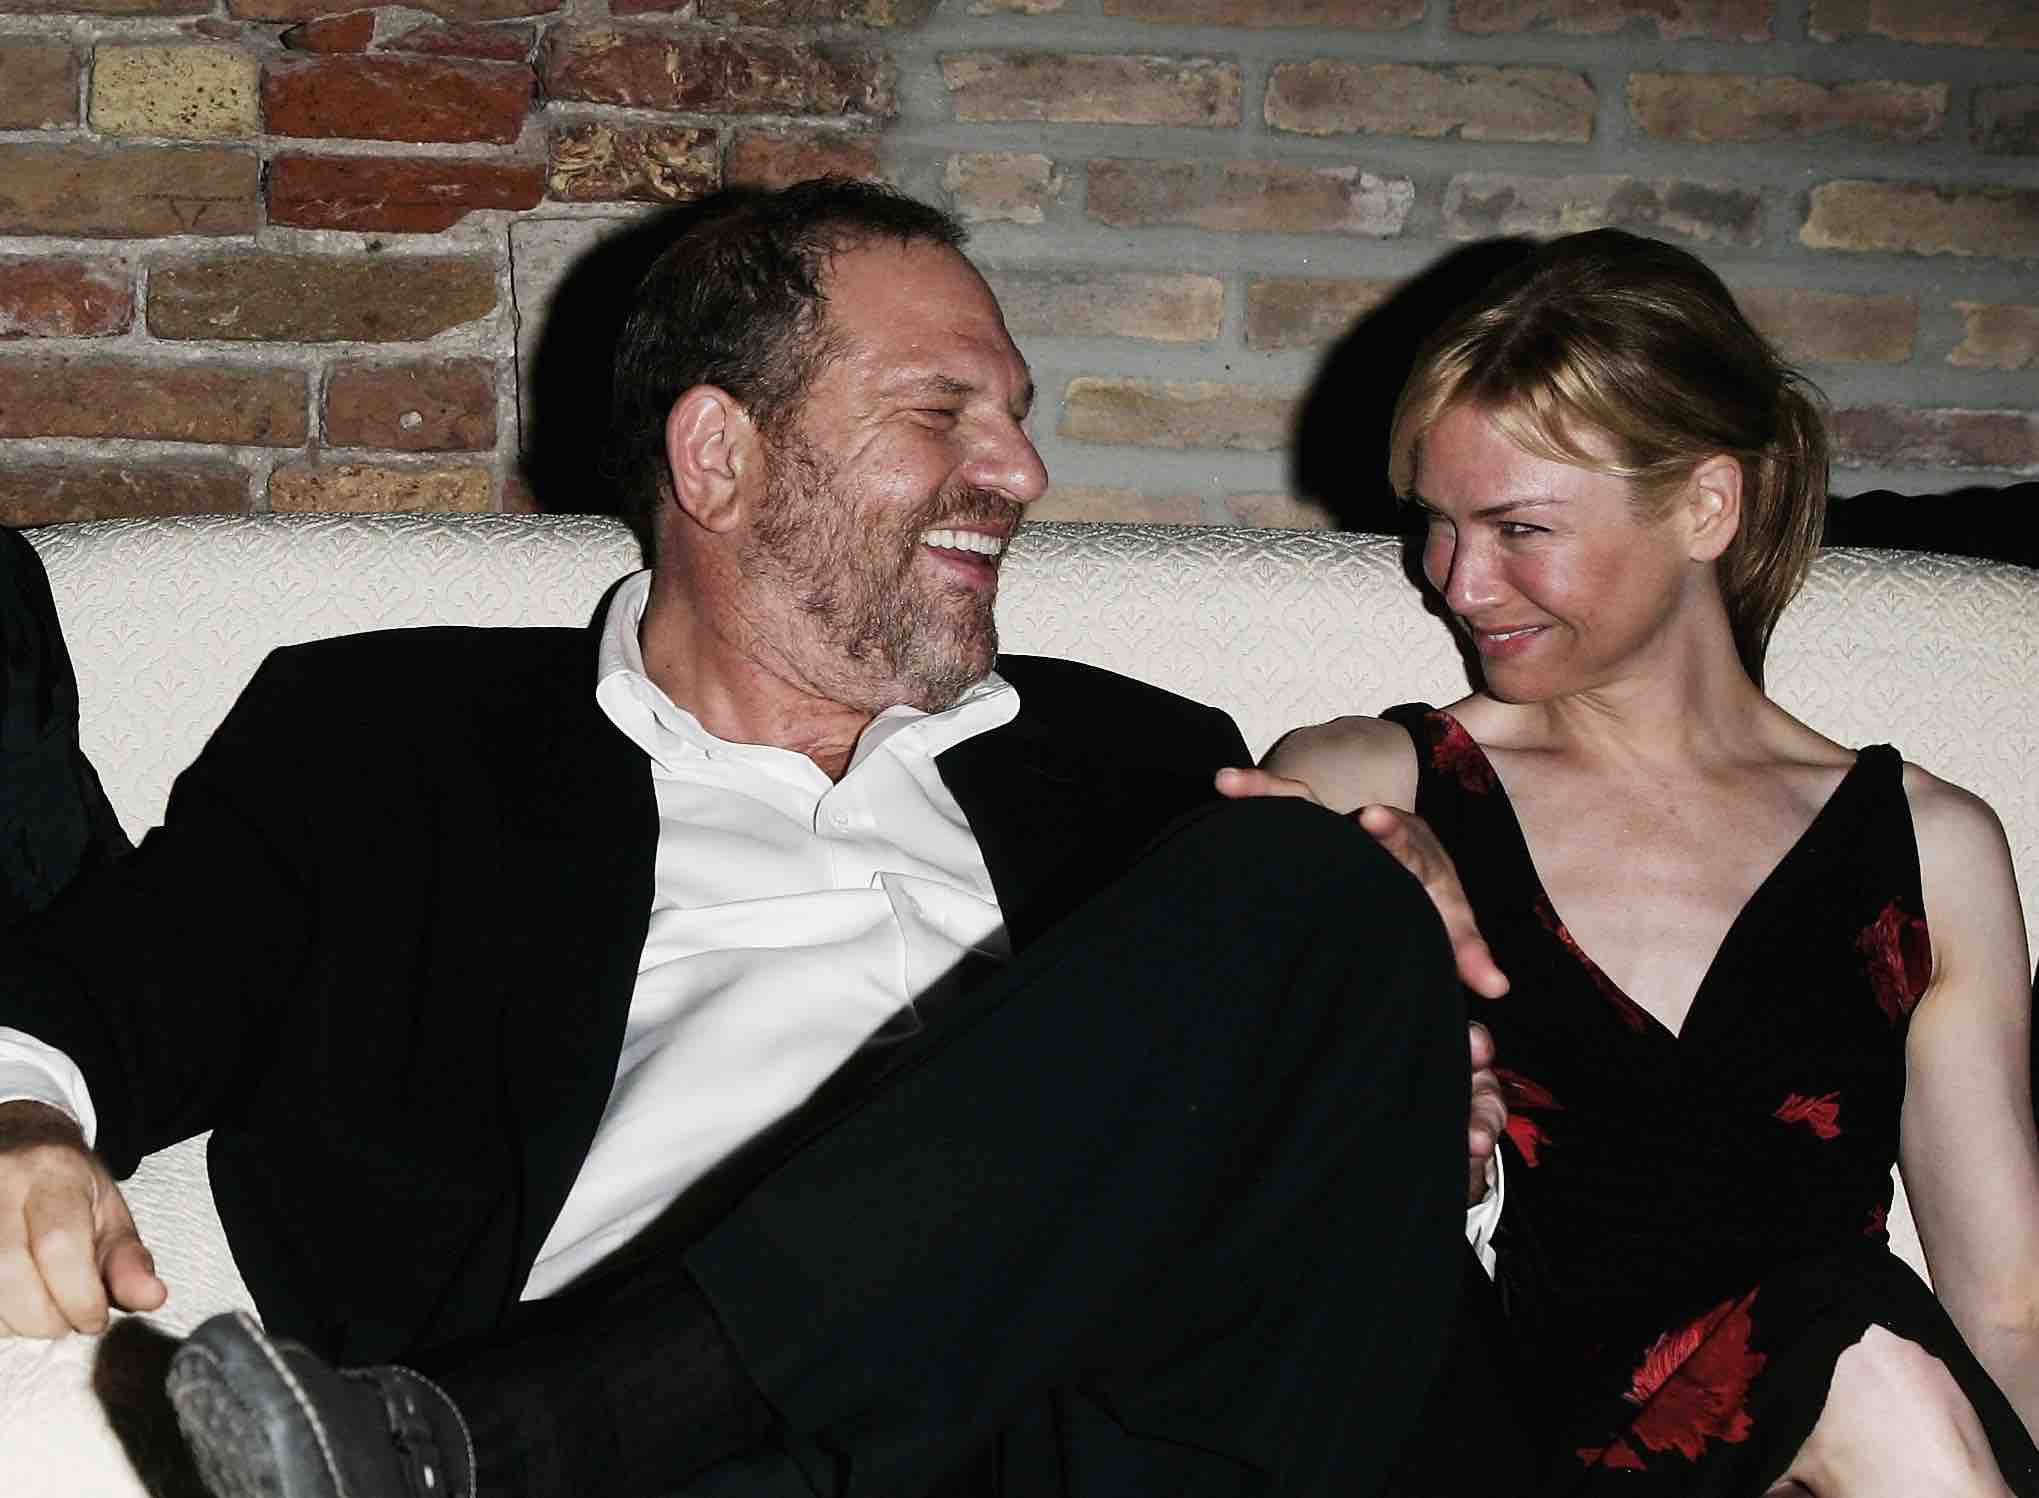 Renee Zellweger denies ever giving Harvey Weinstein sexual favours